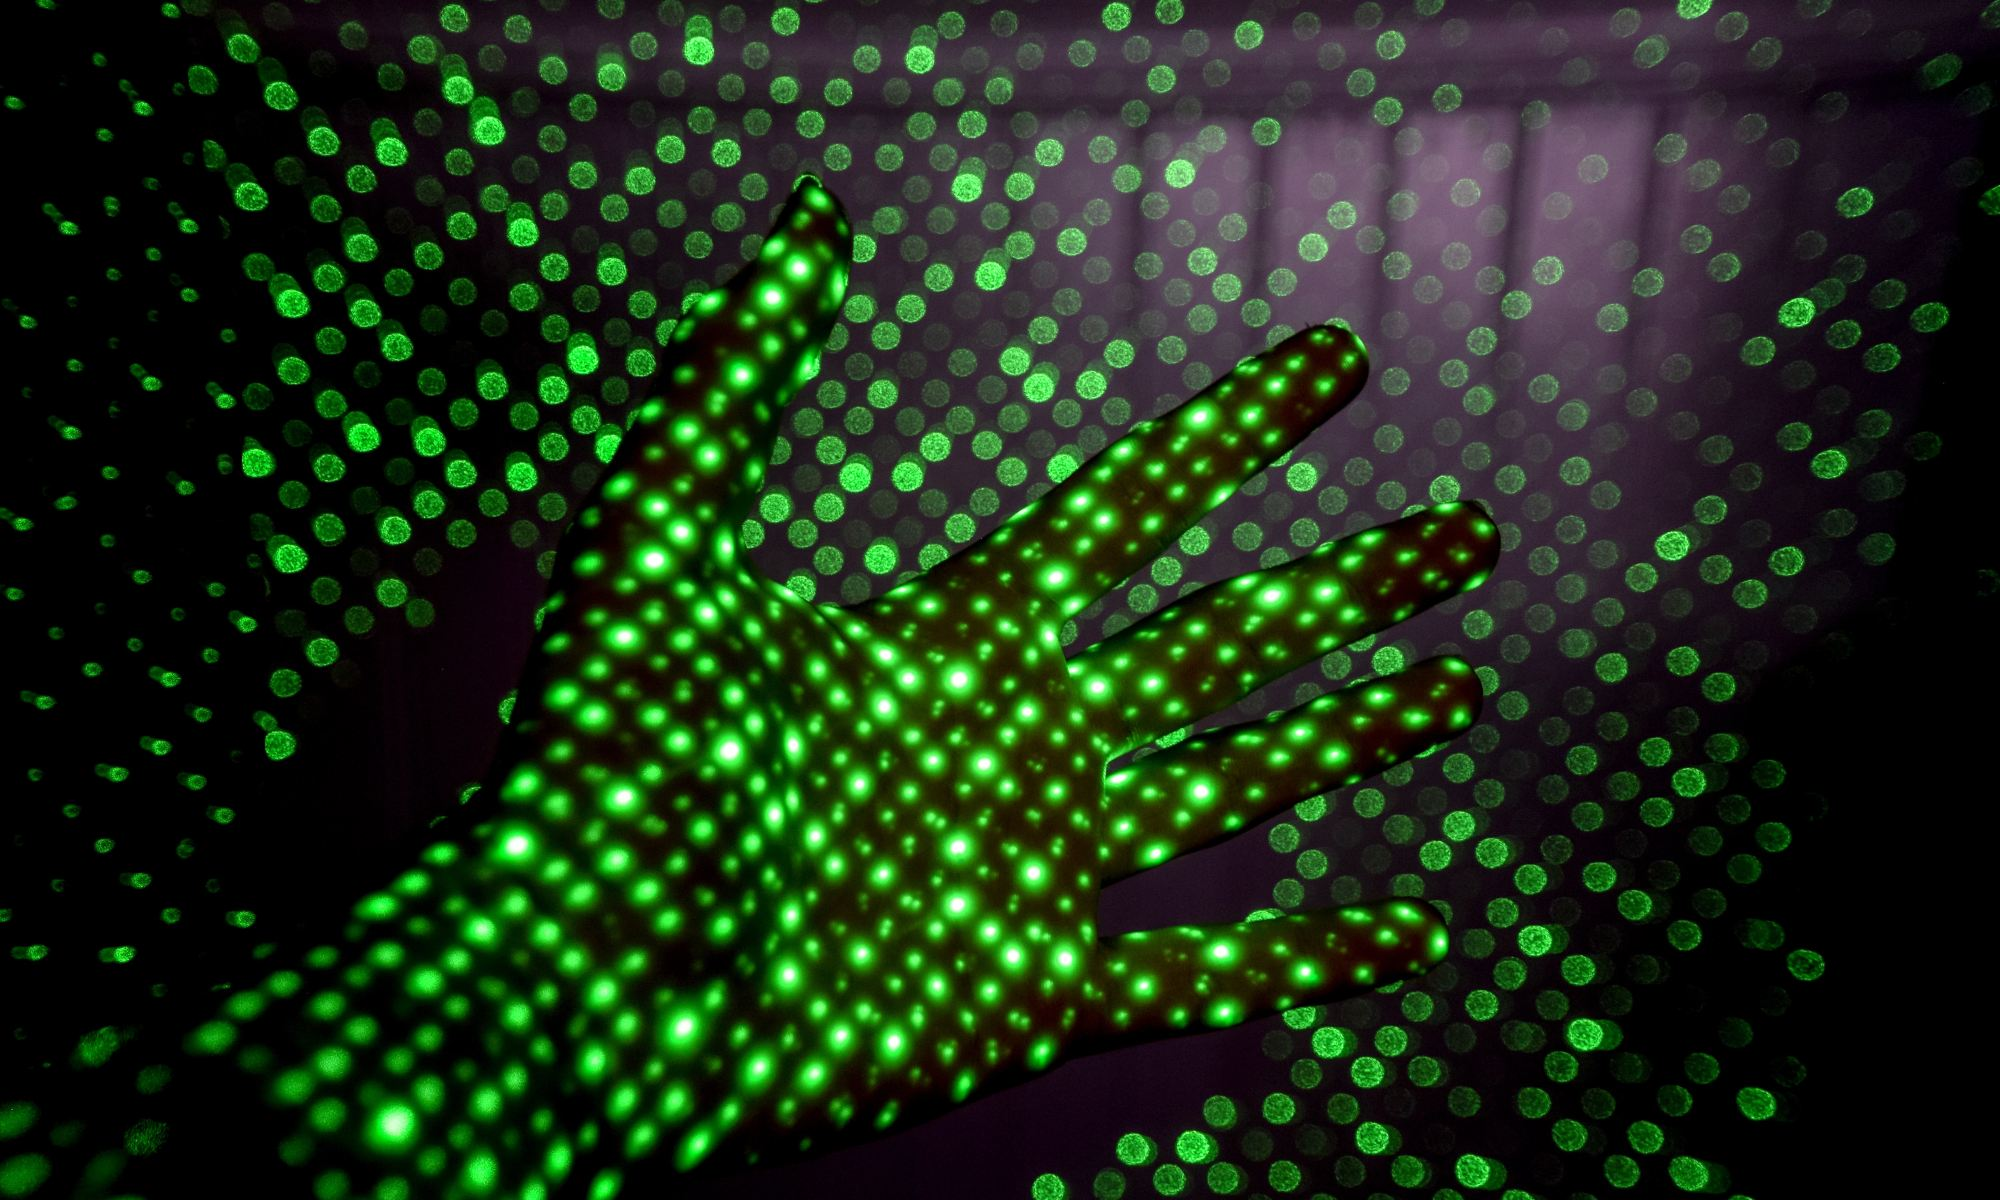 Psychiatrist's hand surrounded by green LED lights